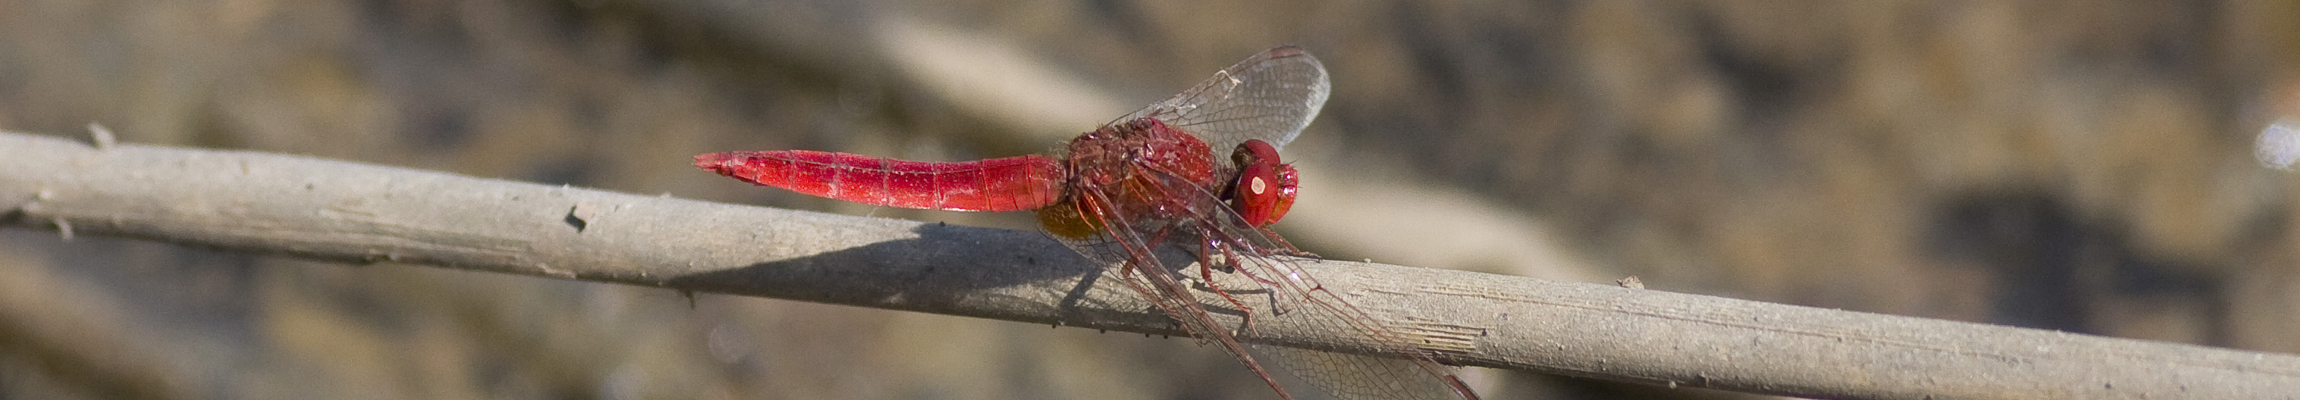 dragonfly spain1 (137)